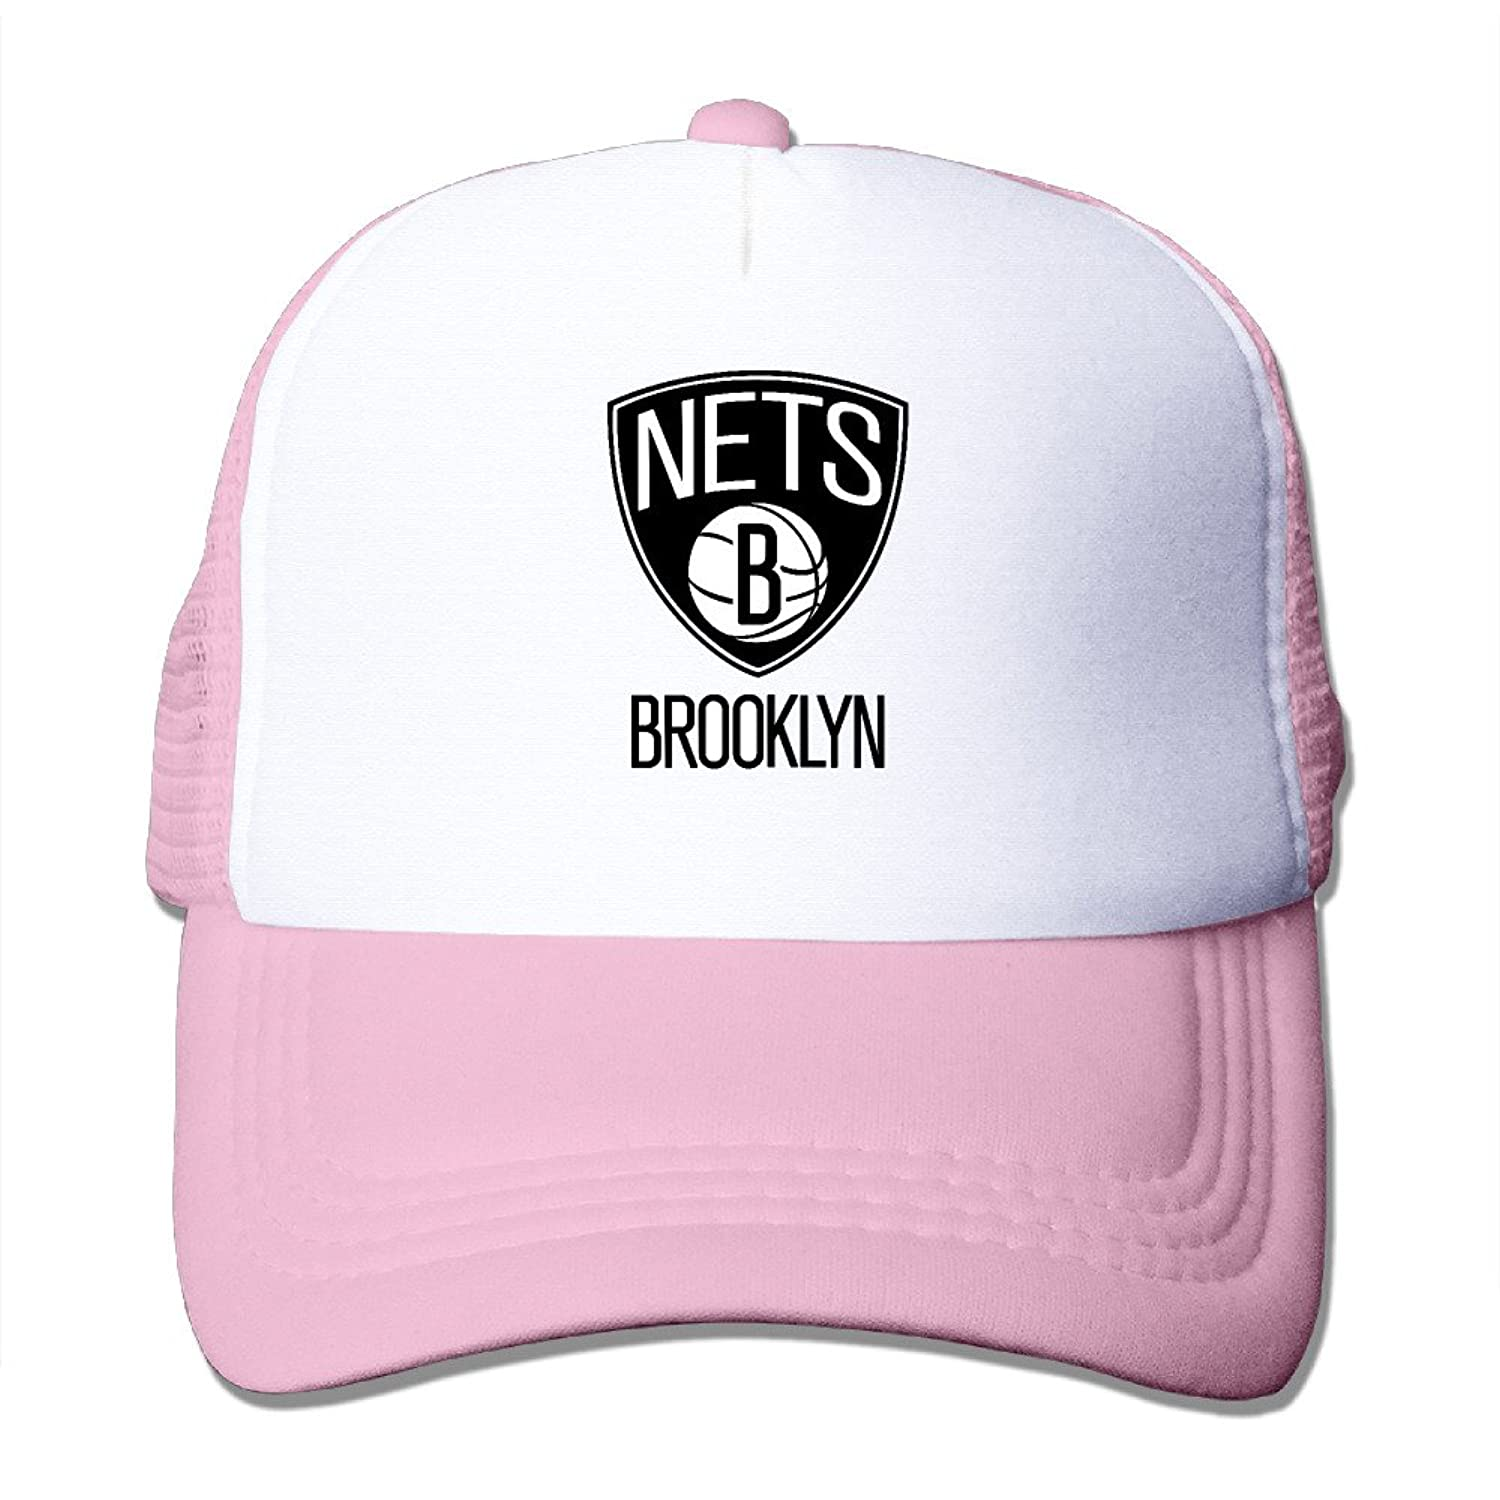 Causal Brooklyn Nets Logo Adult Nylon Adjustable Mesh Hat Mesh Hat RoyalBlue One Size Fits Most